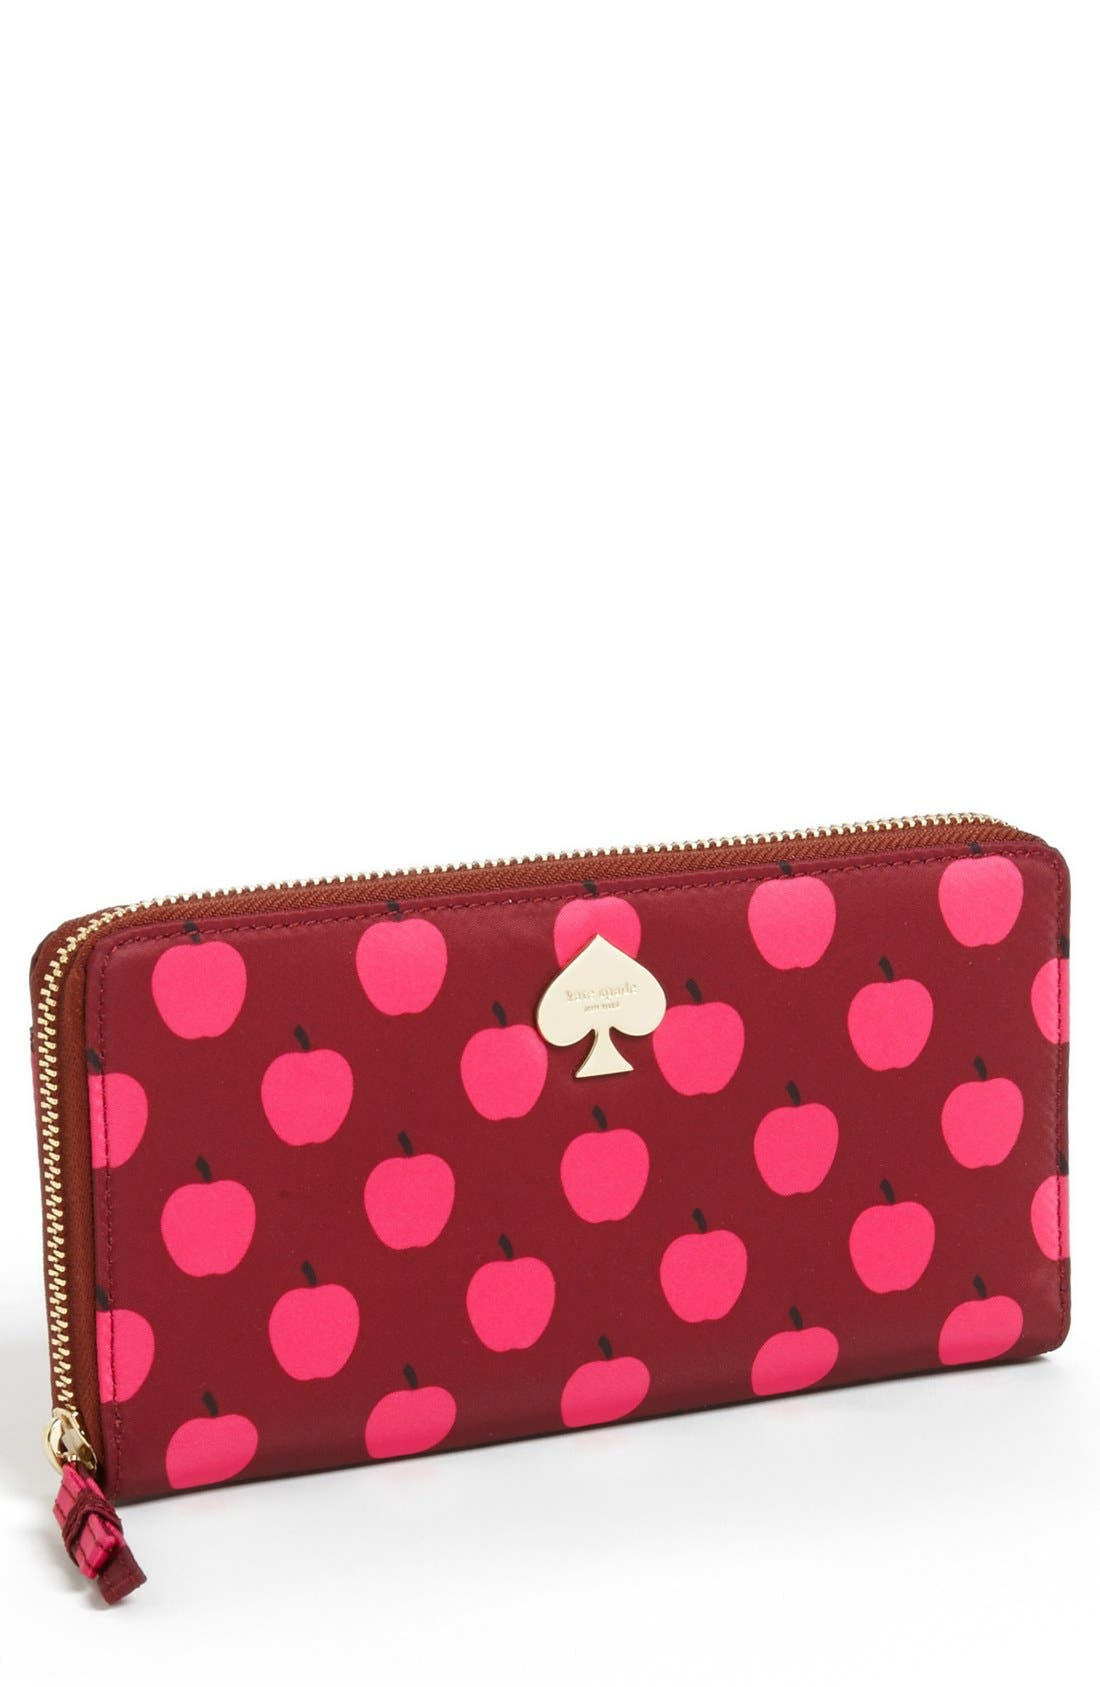 Main Image - kate spade new york 'flatiron - lacey' wallet